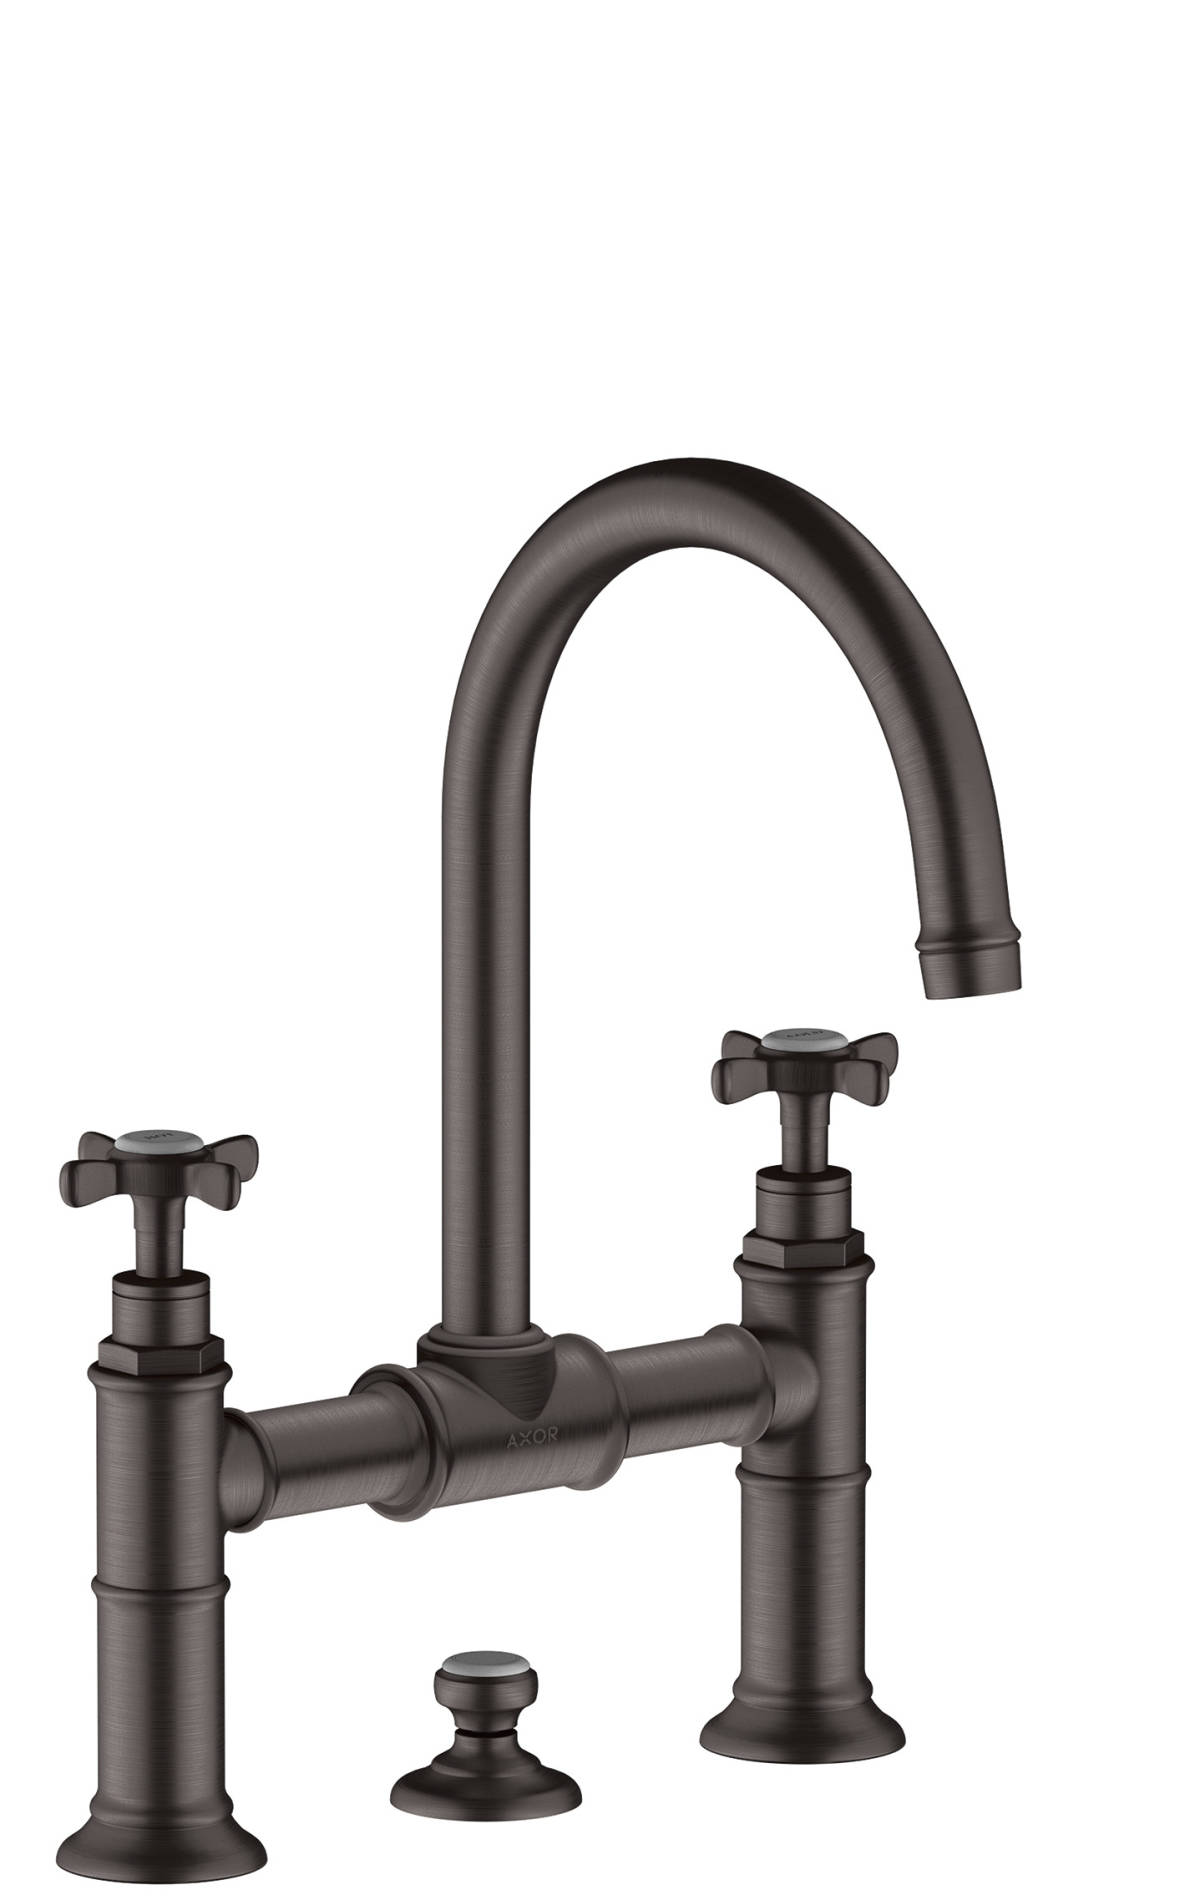 2-handle basin mixer 220 with cross handles and pop-up waste set, Brushed Black Chrome, 16510340